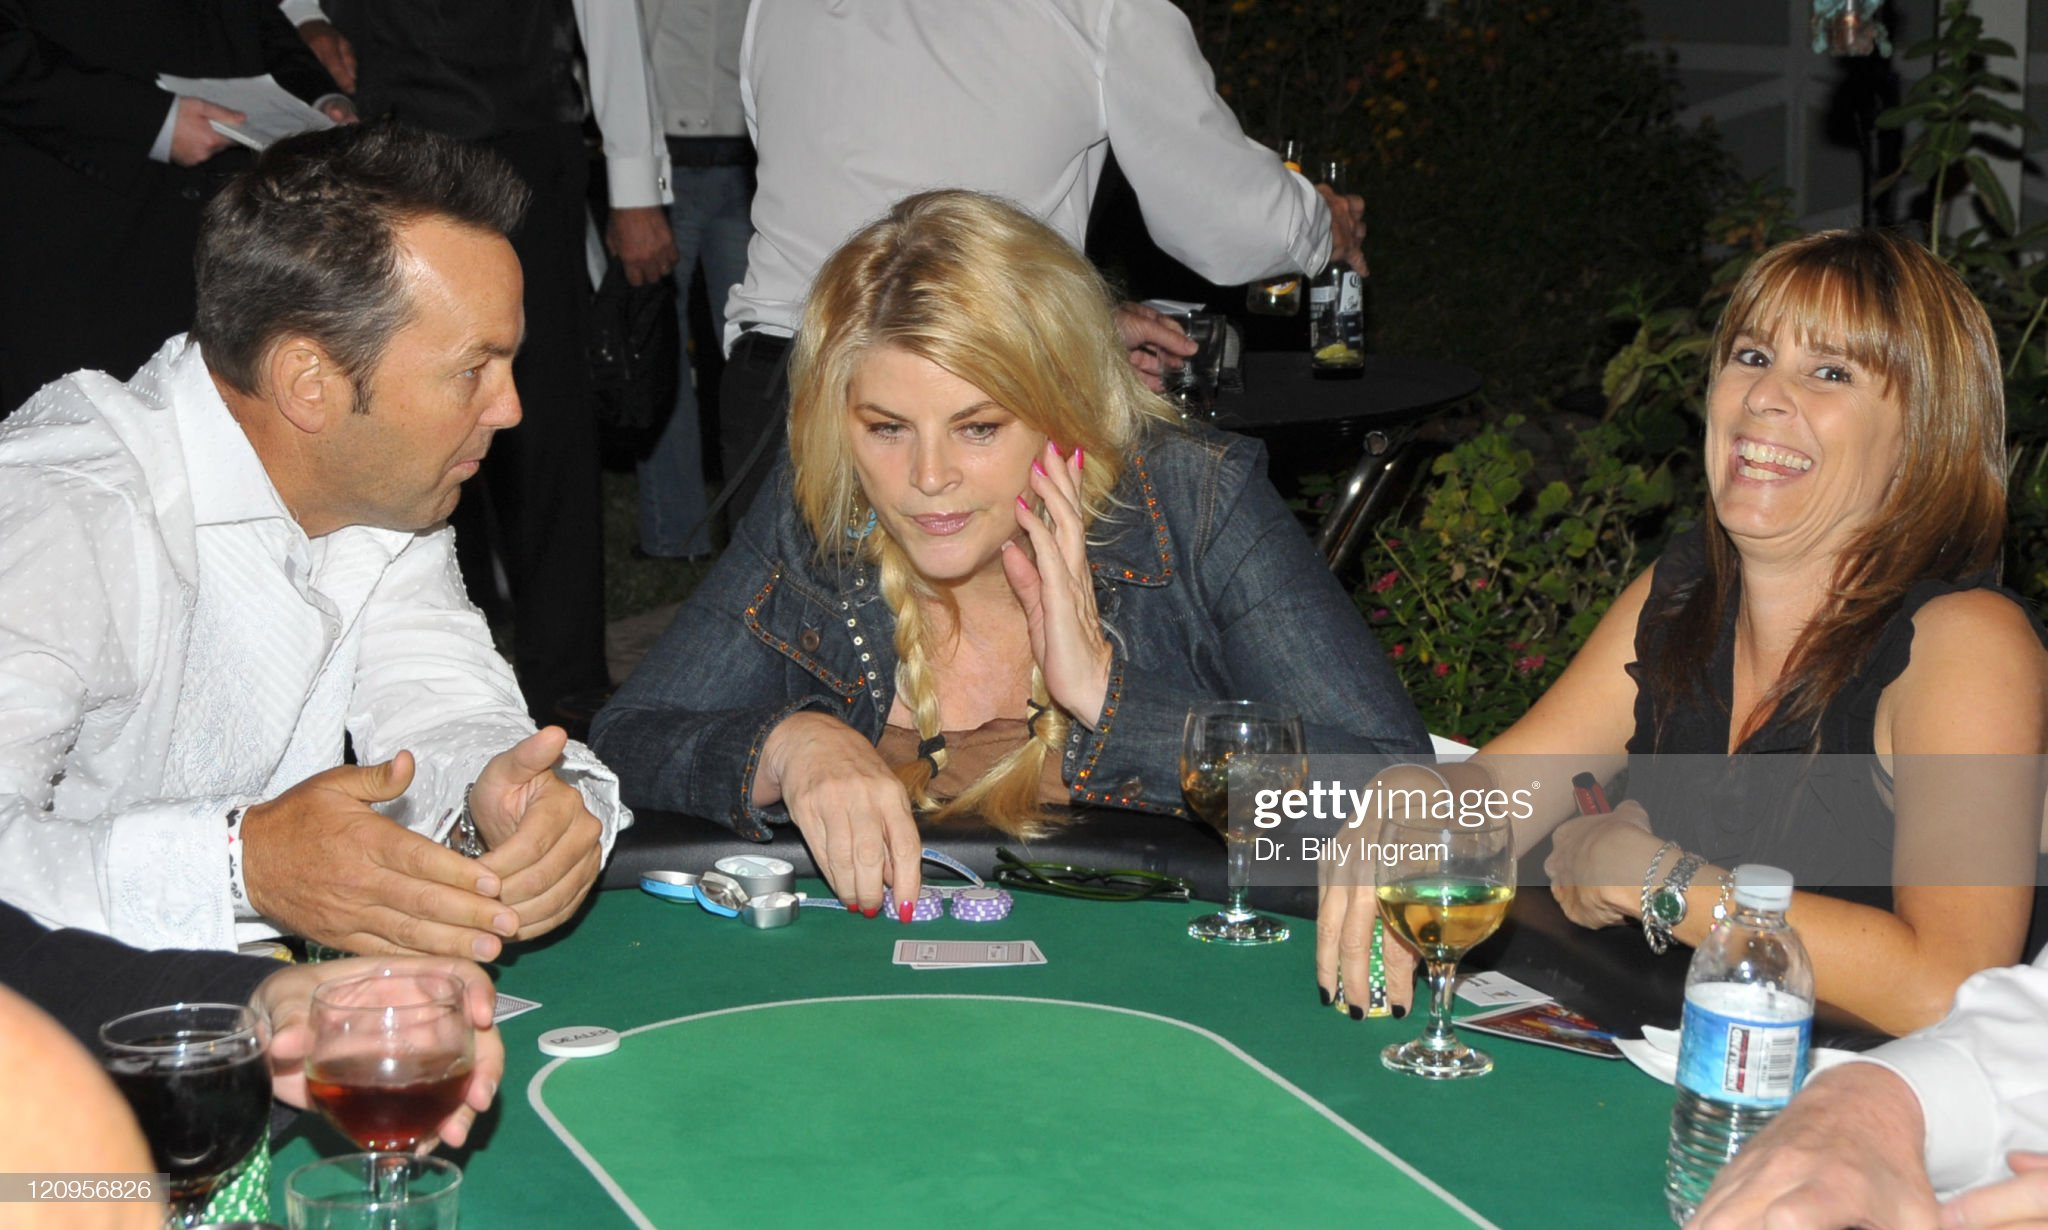 Can you beat Kirstie Alley's winning streak?